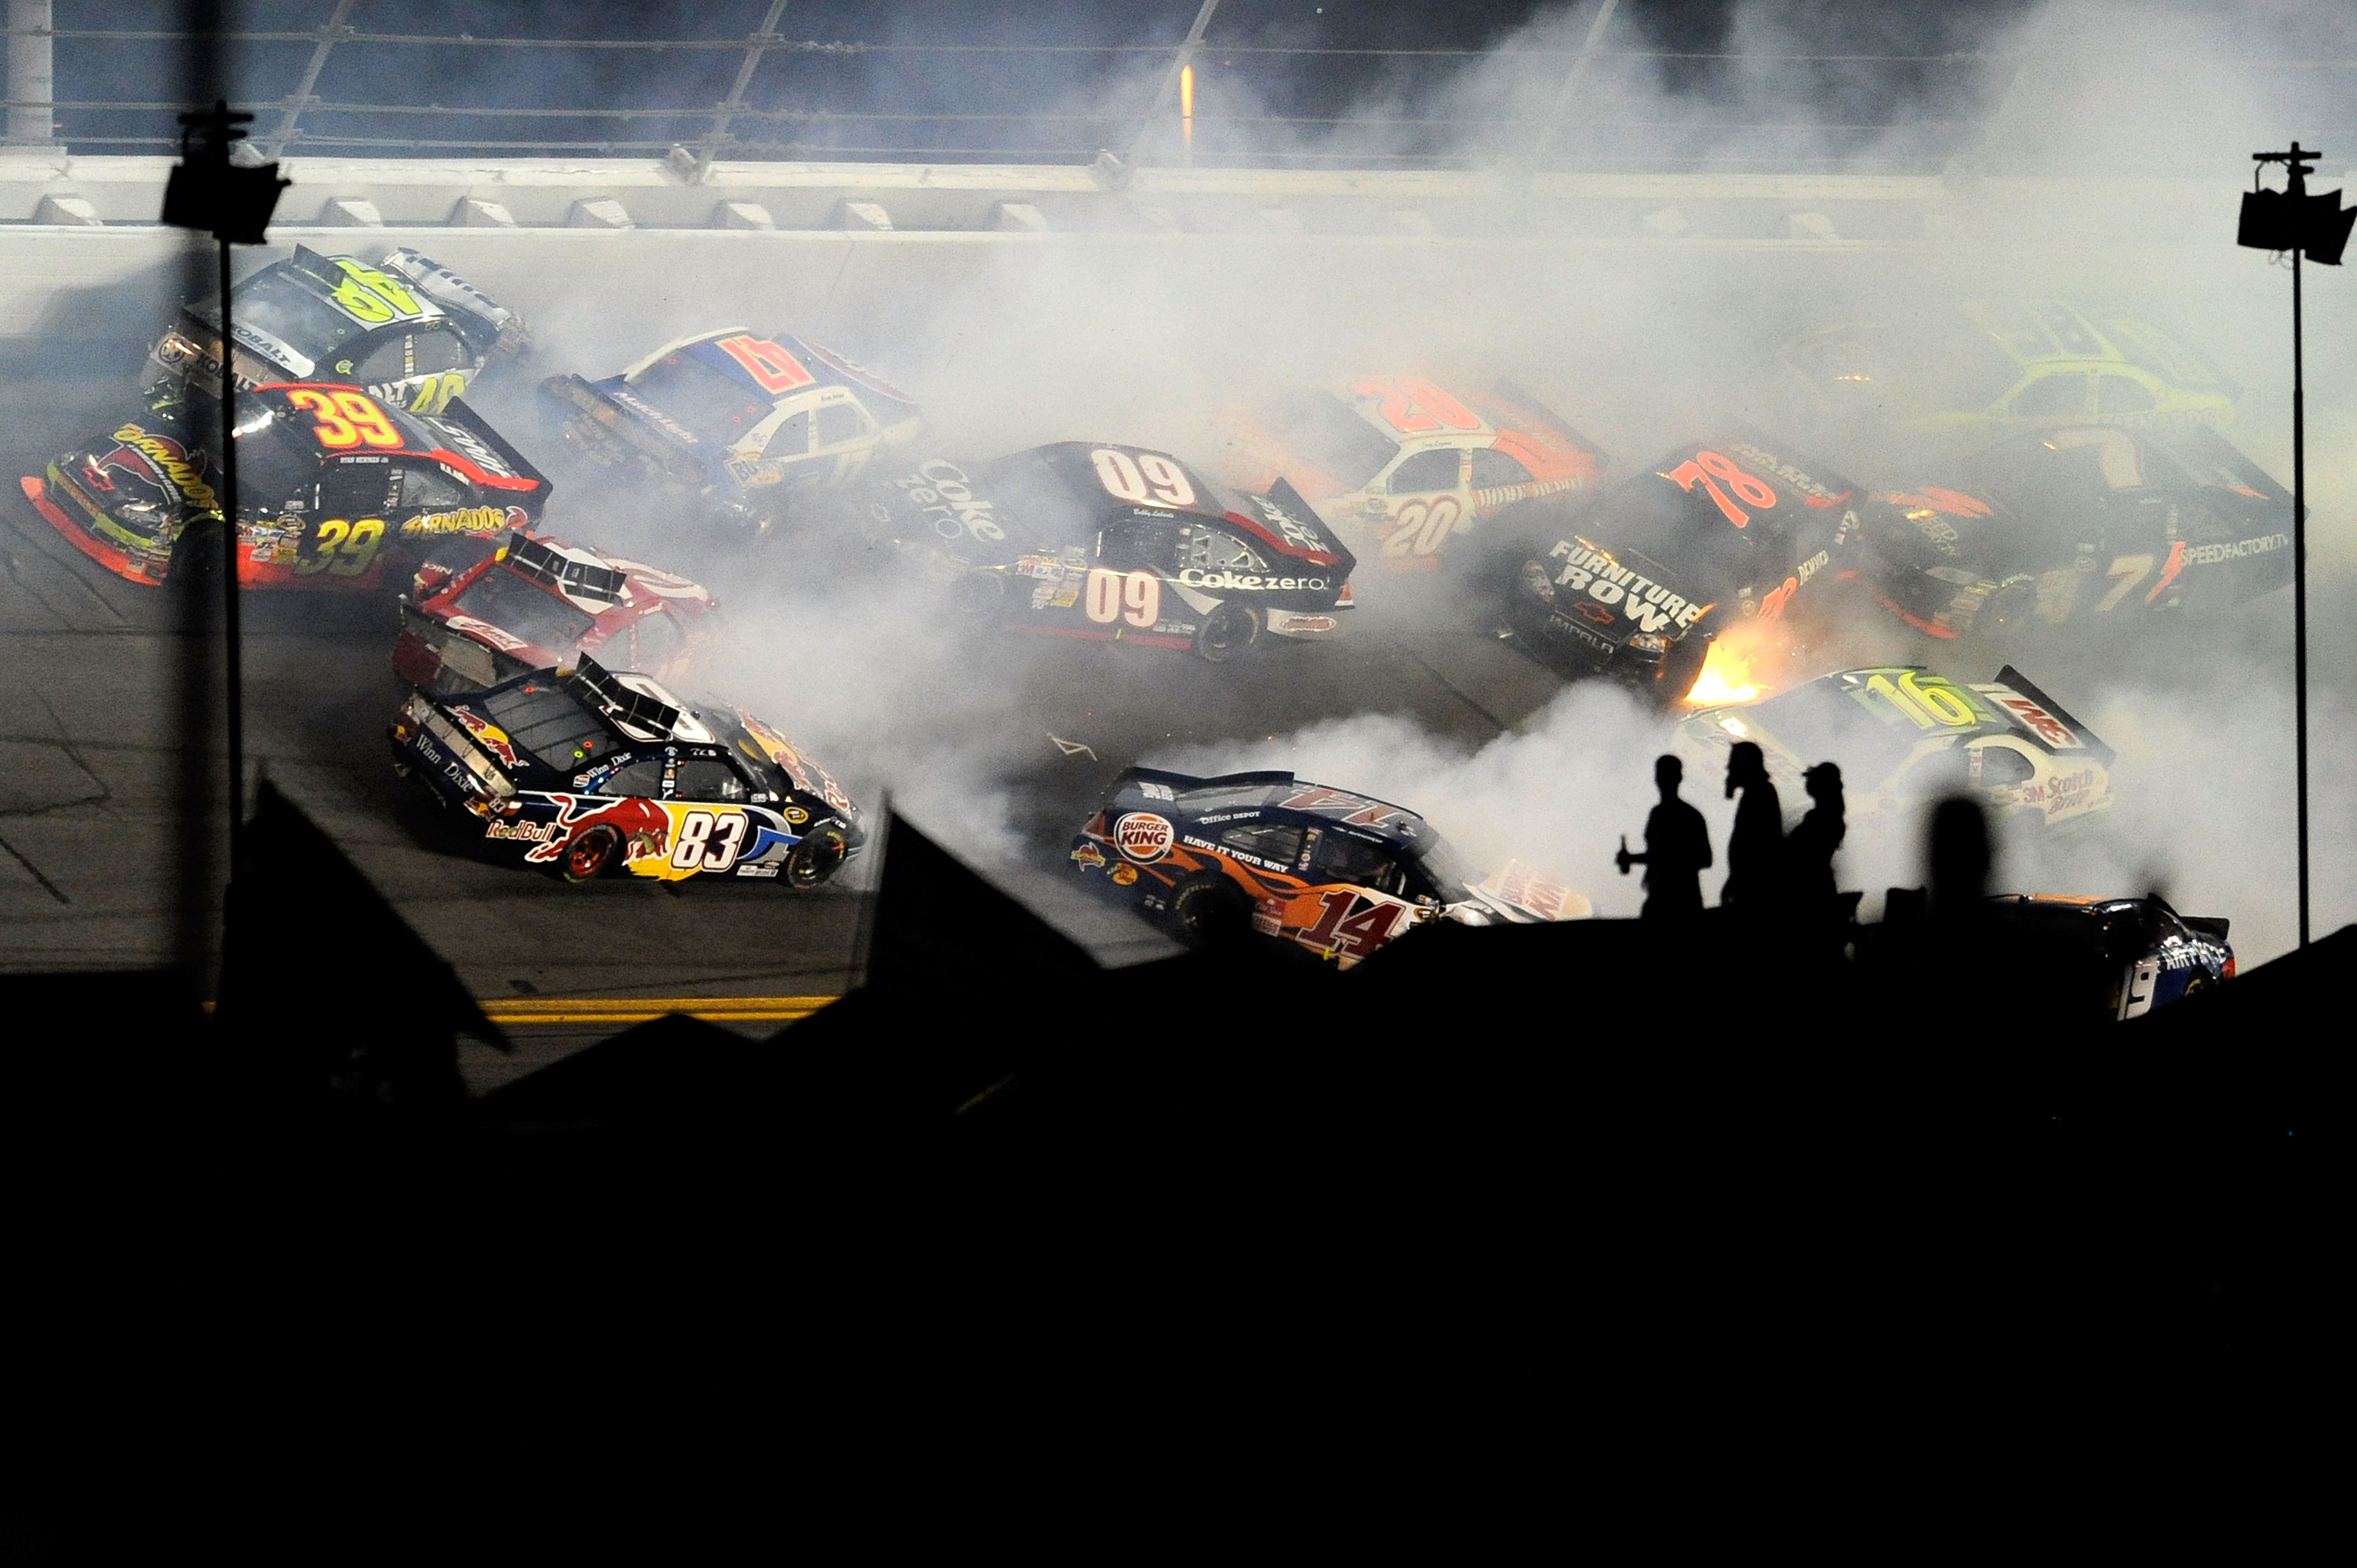 DAYTONA BEACH, FL - JULY 03:  A crash takes place on lap 148 during the NASCAR Sprint Cup Series Coke Zero 400 at Daytona International Speedway on July 3, 2010 in Daytona Beach, Florida.  (Photo by John Harrelson/Getty Images for NASCAR)